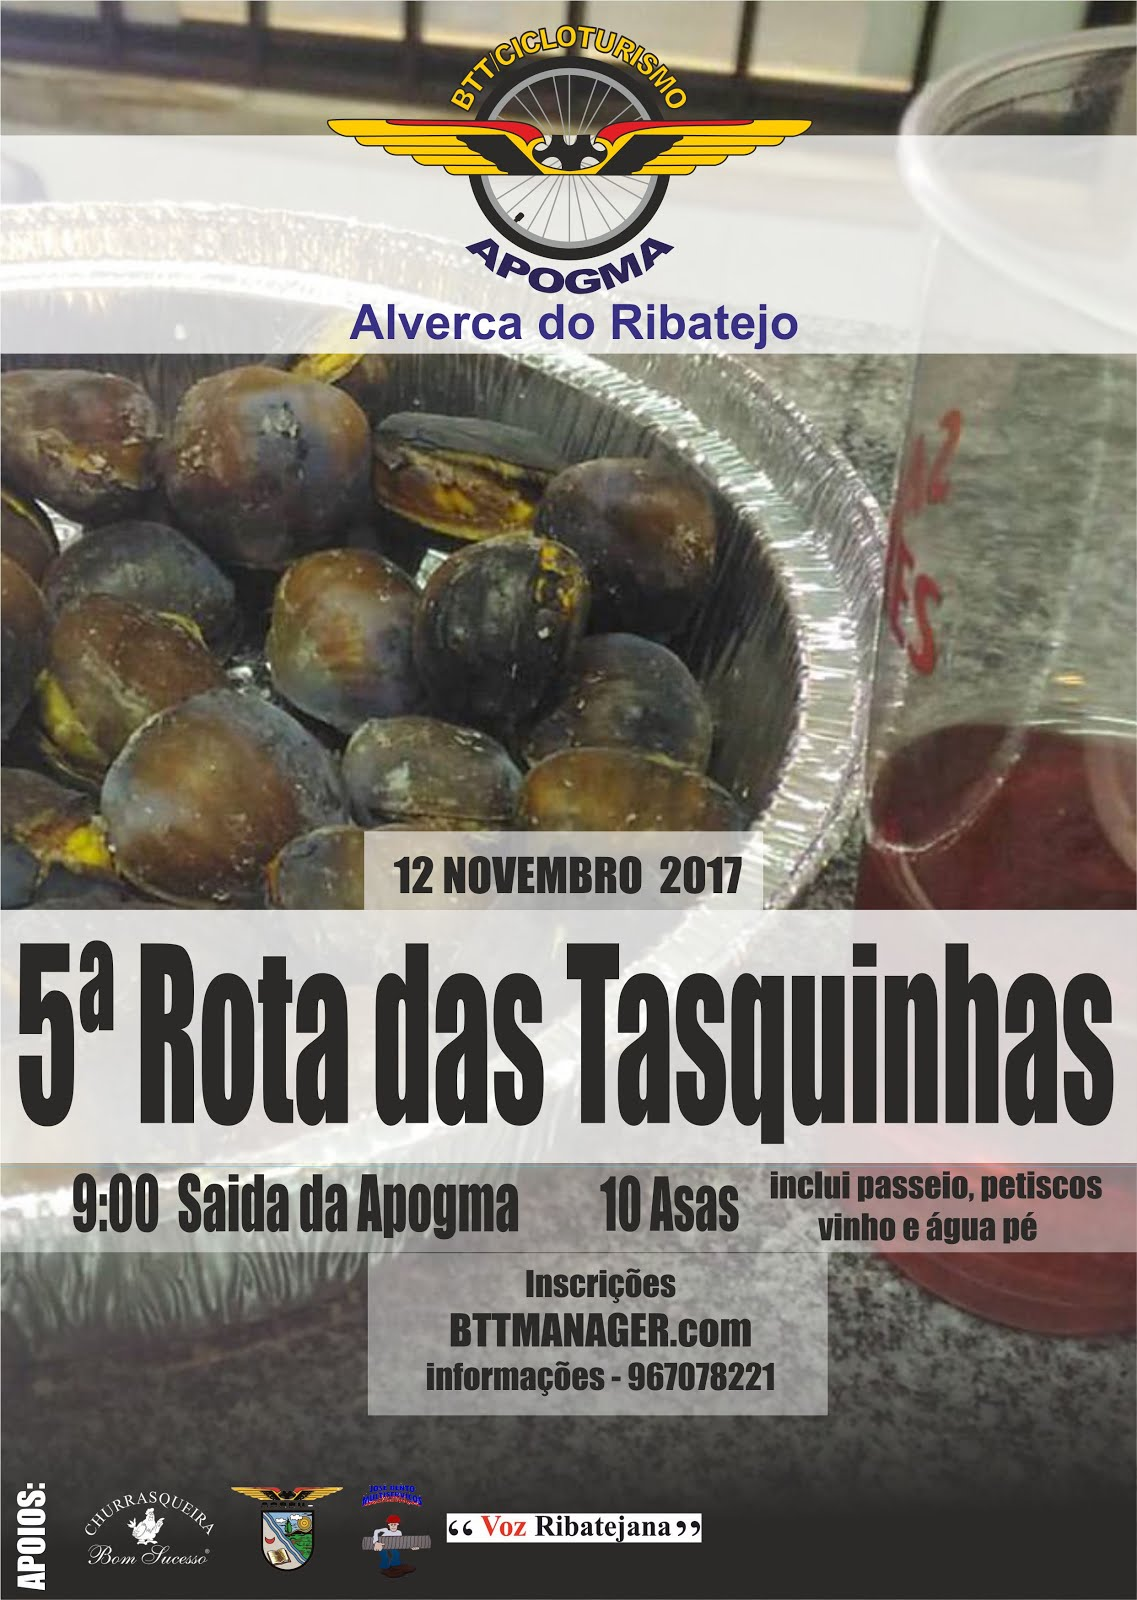 12NOV * ALVERCA DO RIBATEJO